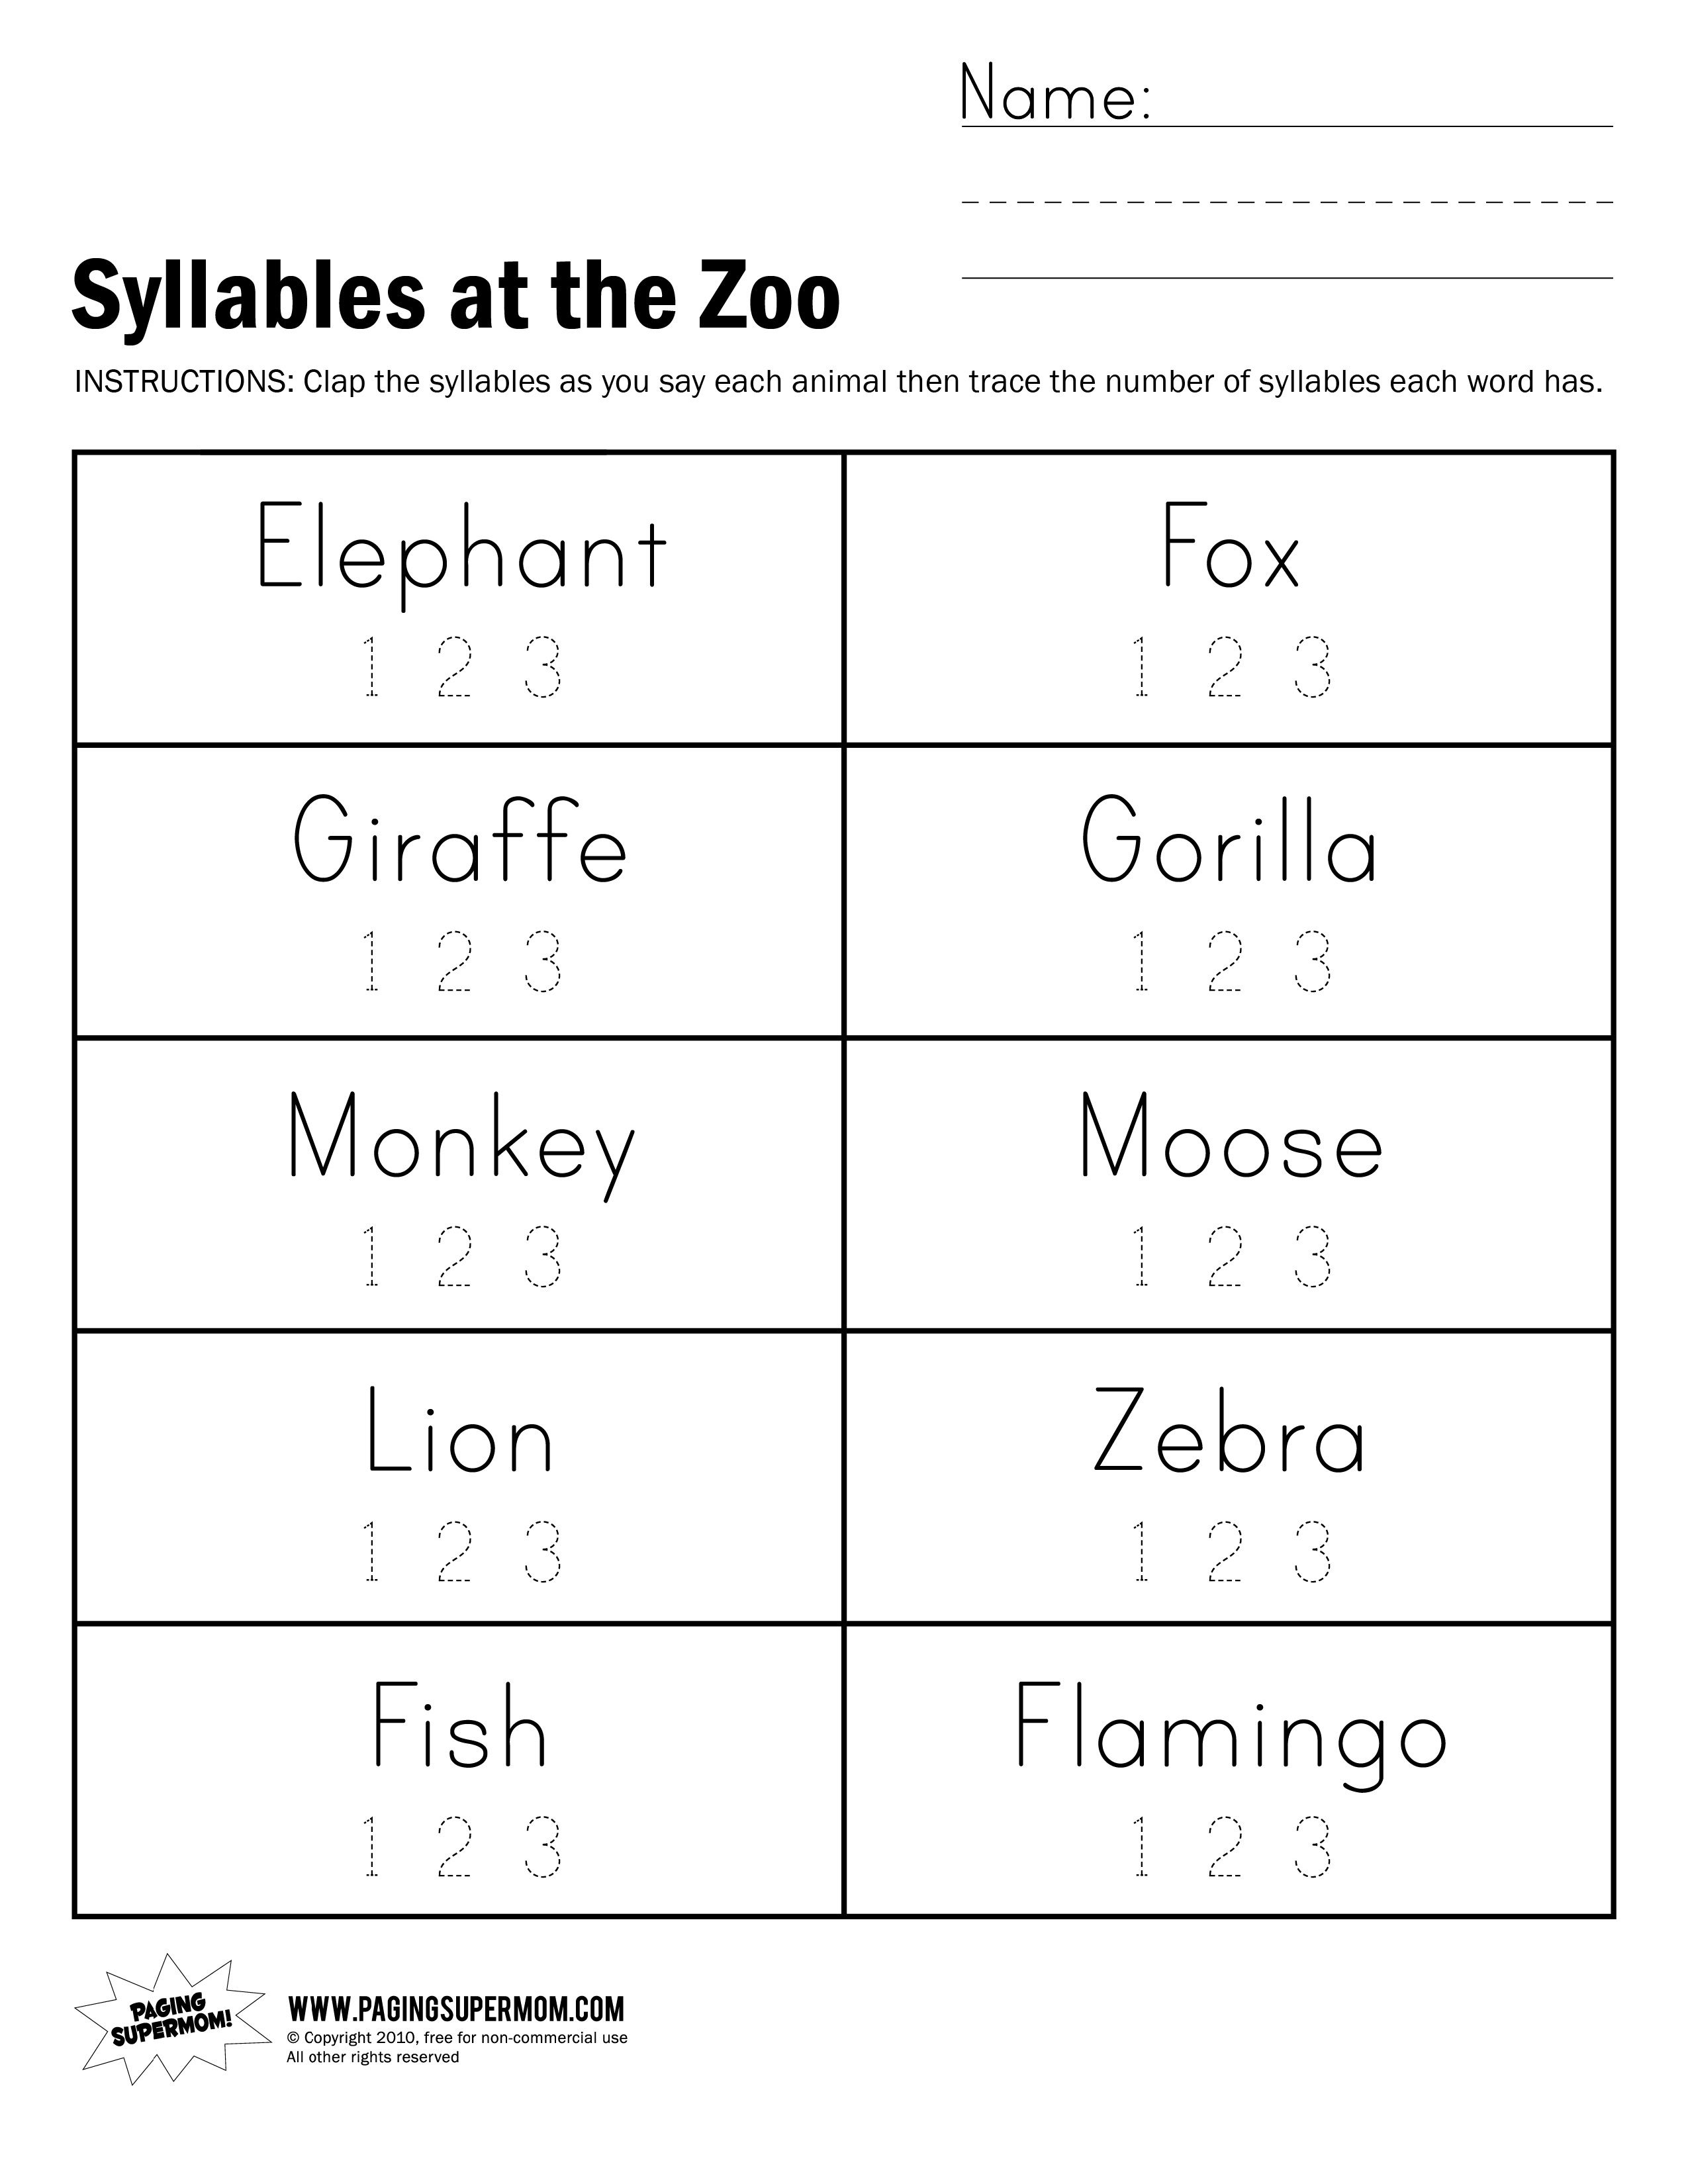 Syllables At The Zoo Worksheet - Free Printable Open And Closed | Free Printable Open And Closed Syllable Worksheets